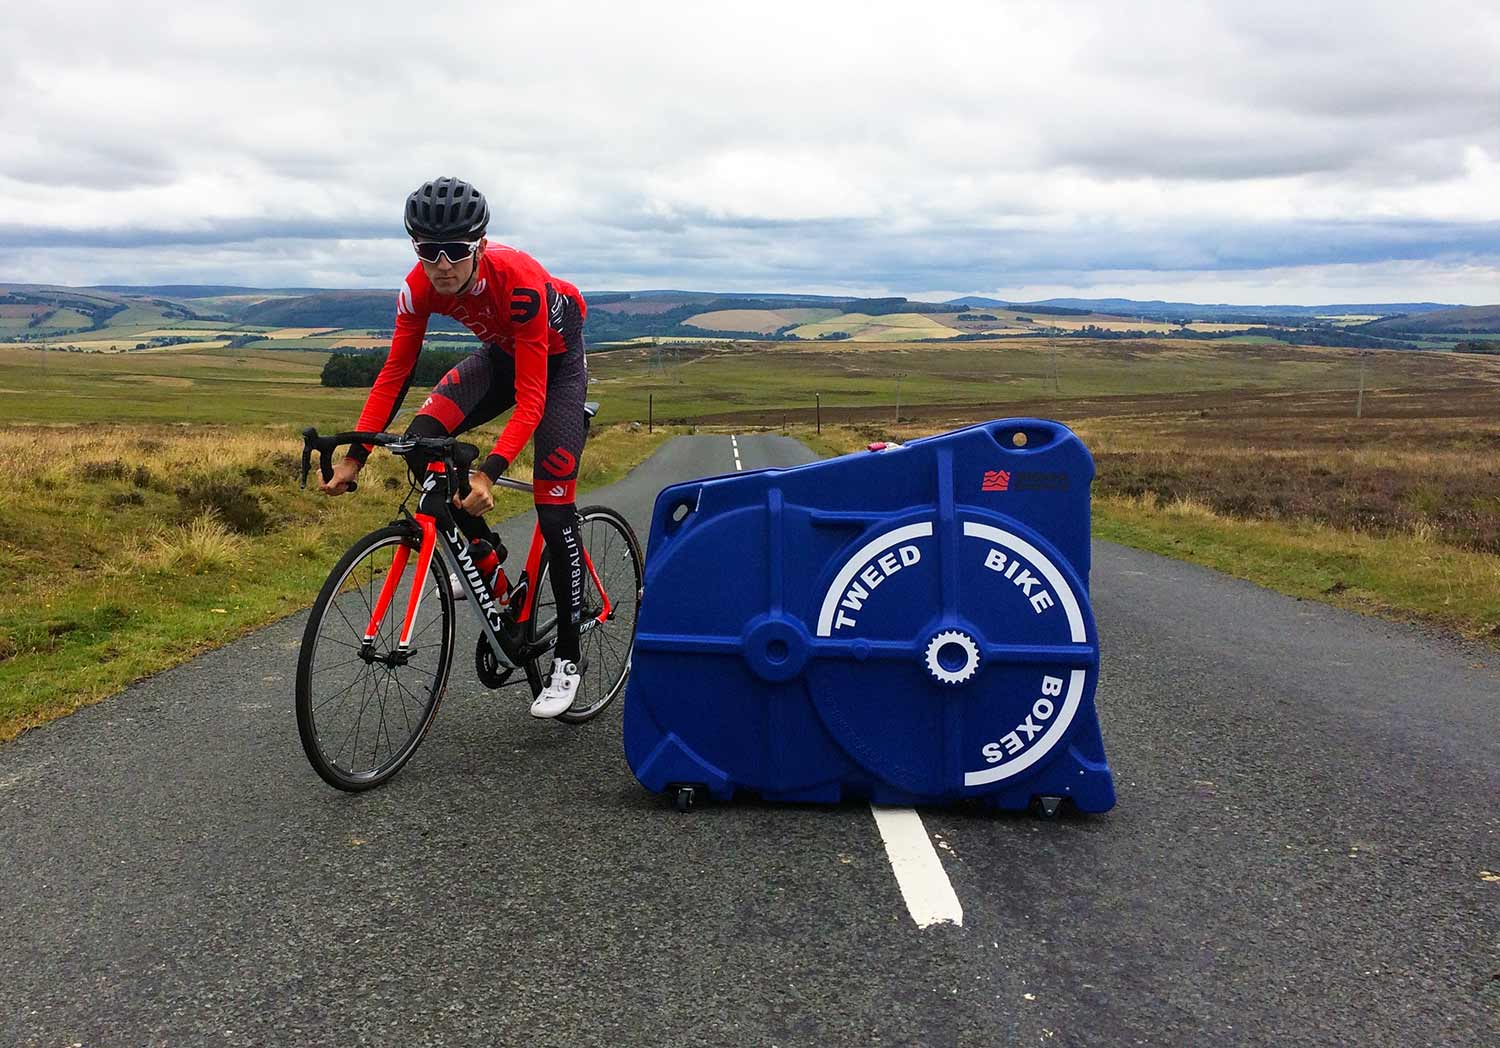 TBB-RoadBikeBox